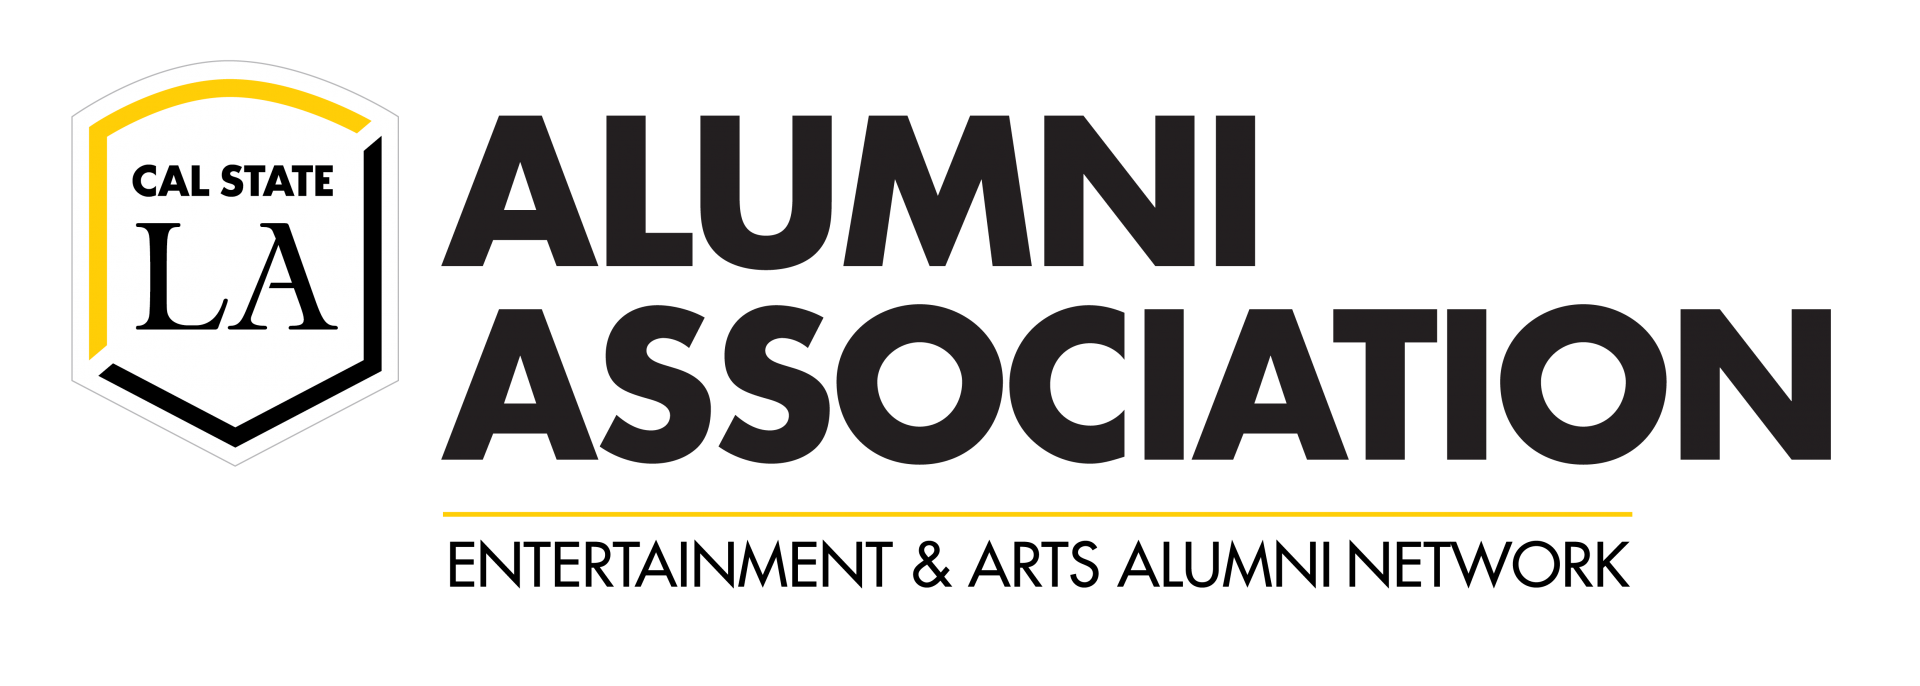 Entertainment & Arts Alumni Network